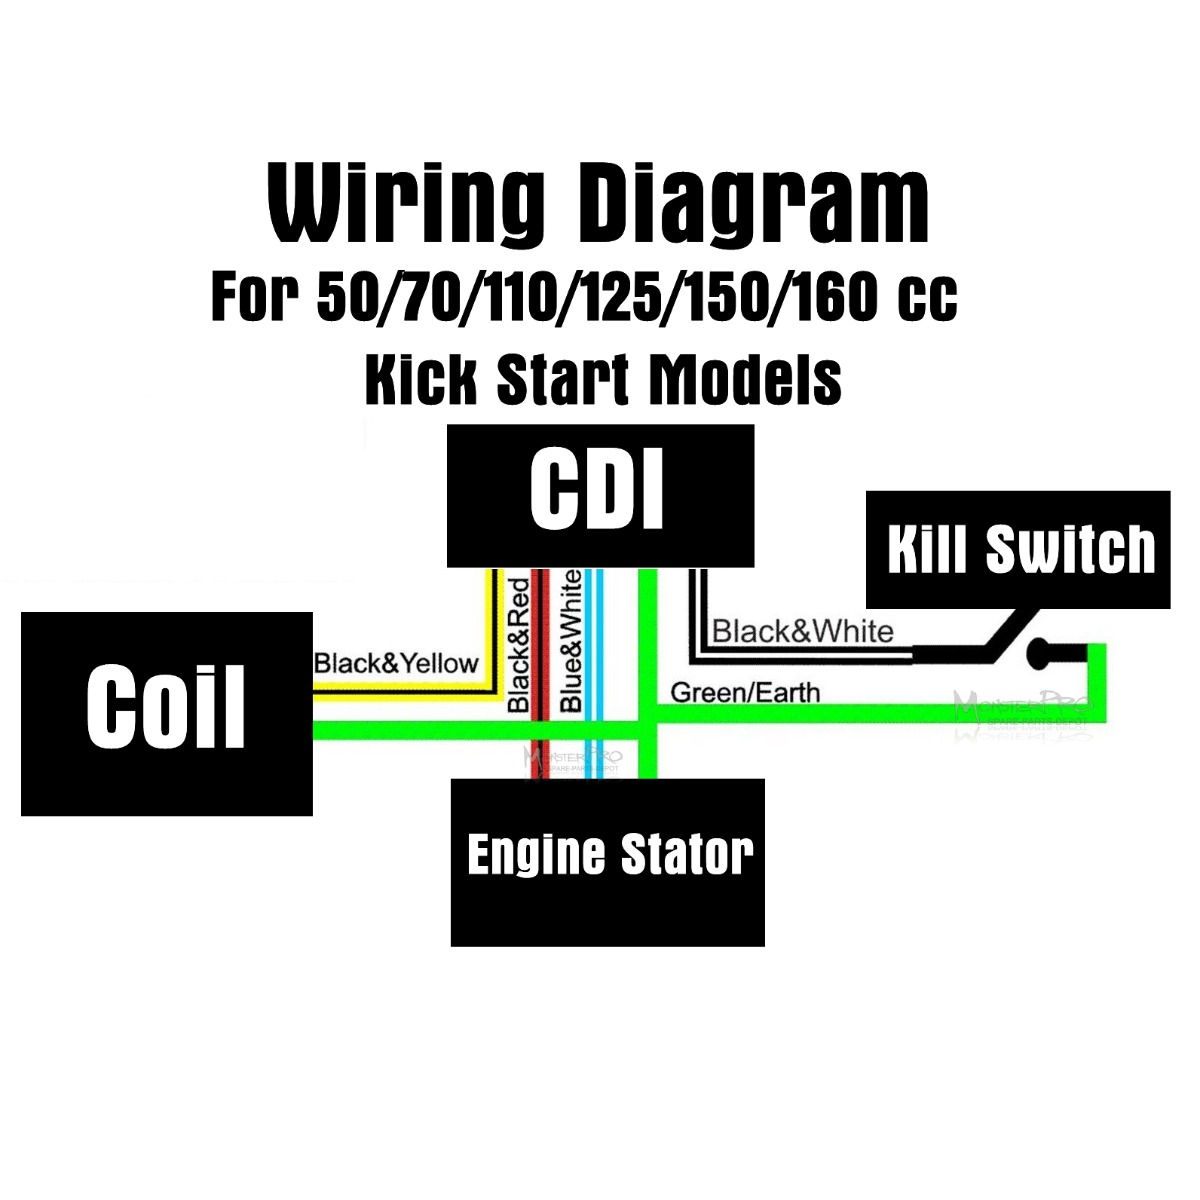 Shoprider Mobility Scooter Wiring Diagram likewise 49 Cc 5 Wire Diagram in addition Two Hoses That Run From The Carburetor Is The Upper Hose Cut And Zip Tied Is in addition Carbide 150cc Wiring Diagram additionally Tomos Carburetor For 50cc 2 Stroke. on wiring diagram for 49cc quad